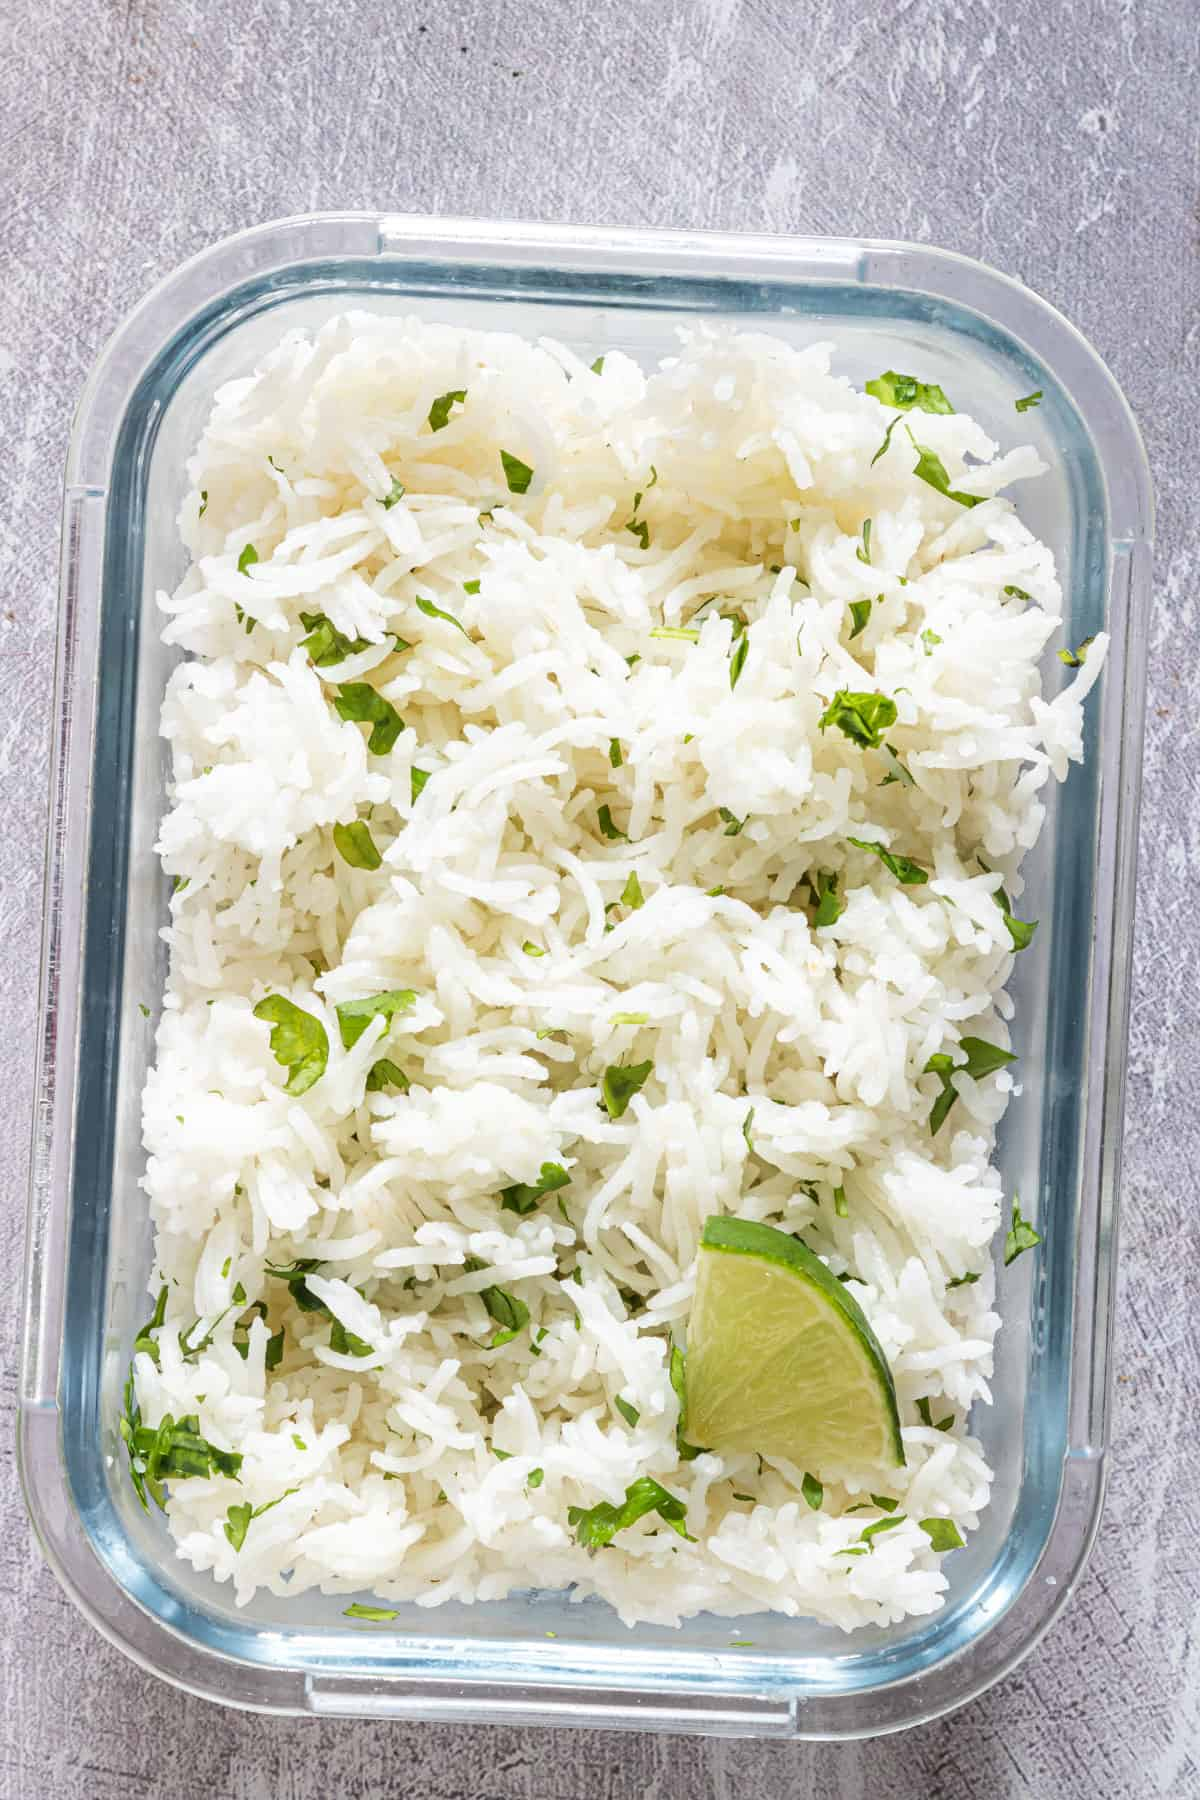 the finished cilantro lime rice inside a glass food storage container